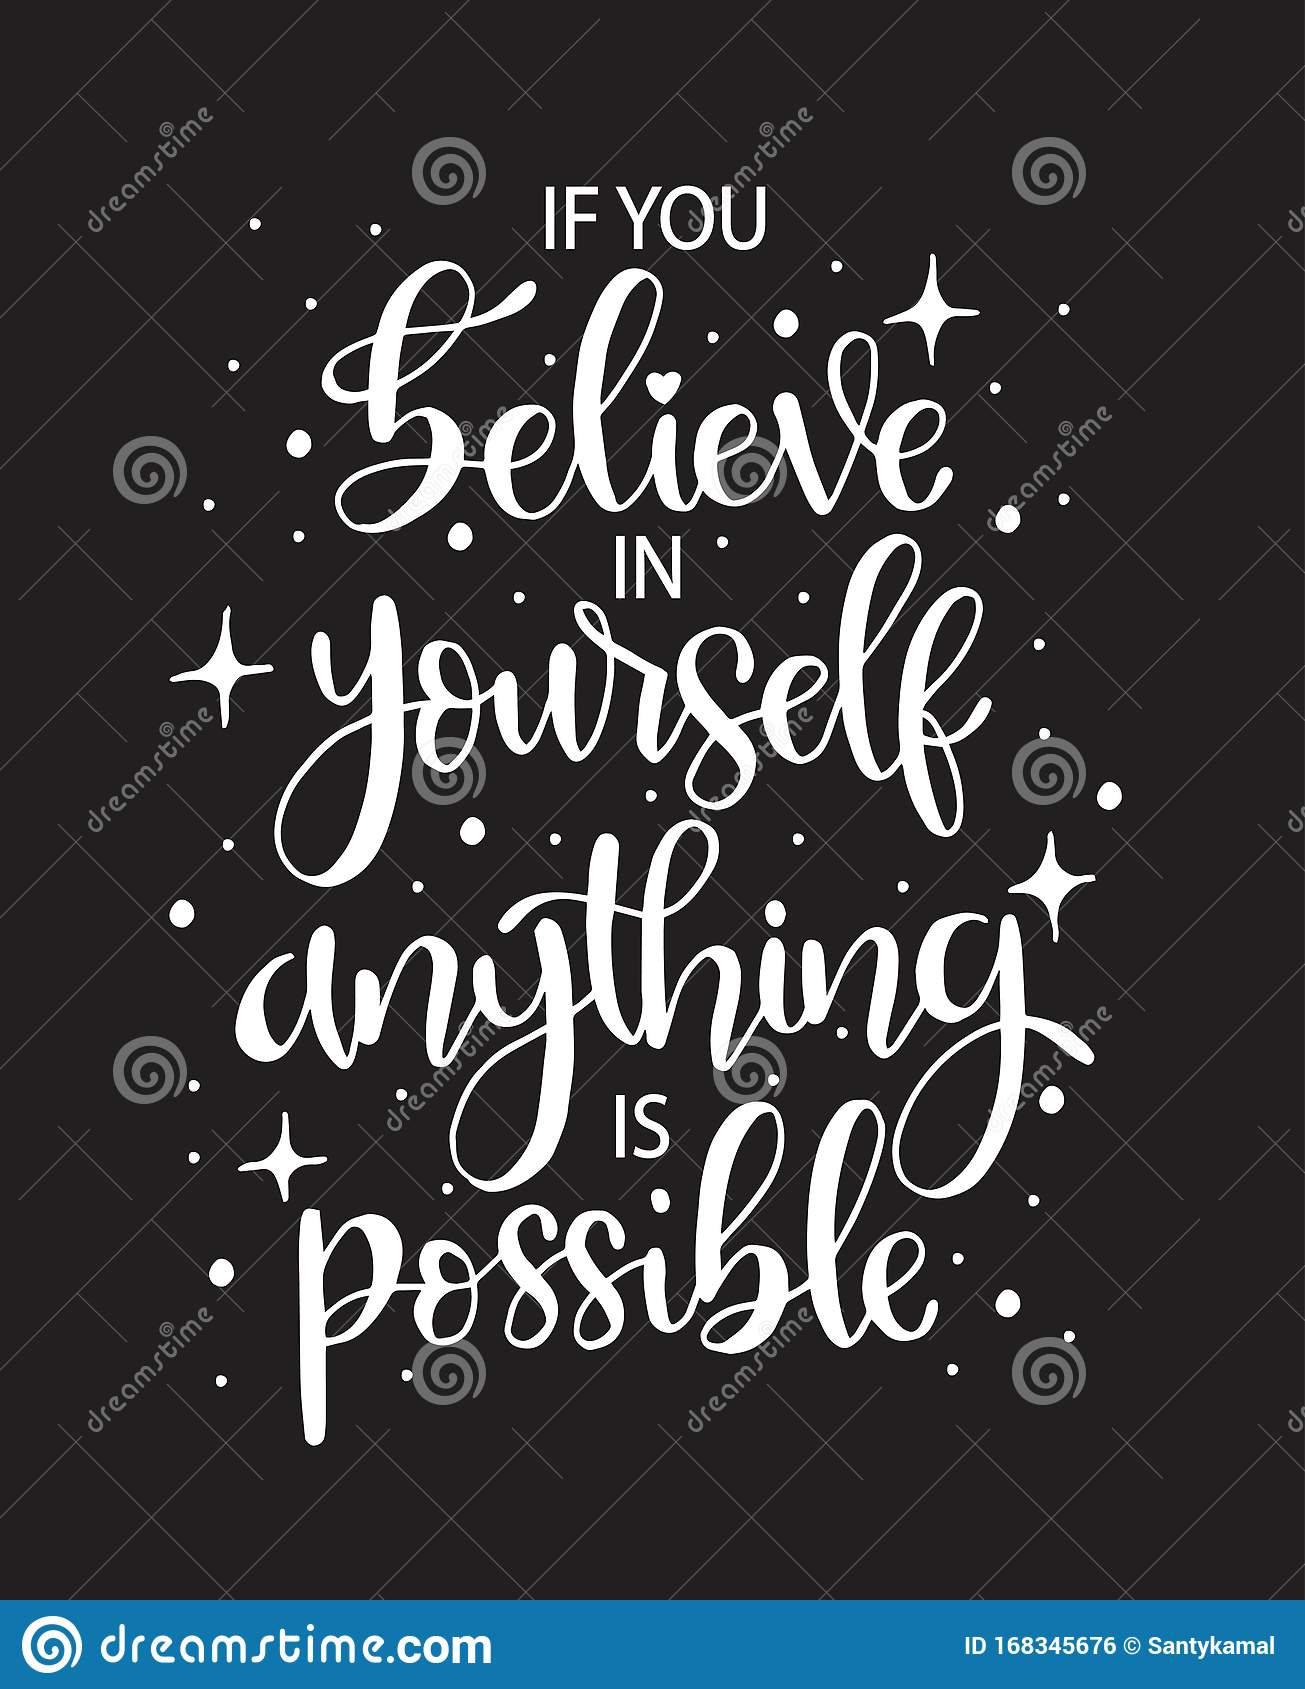 If You Believe In Yourself Anything Is Possible Hand Lettering Motivational Quotes Stock Illustration Illustration Of Decorative Typography 168345676